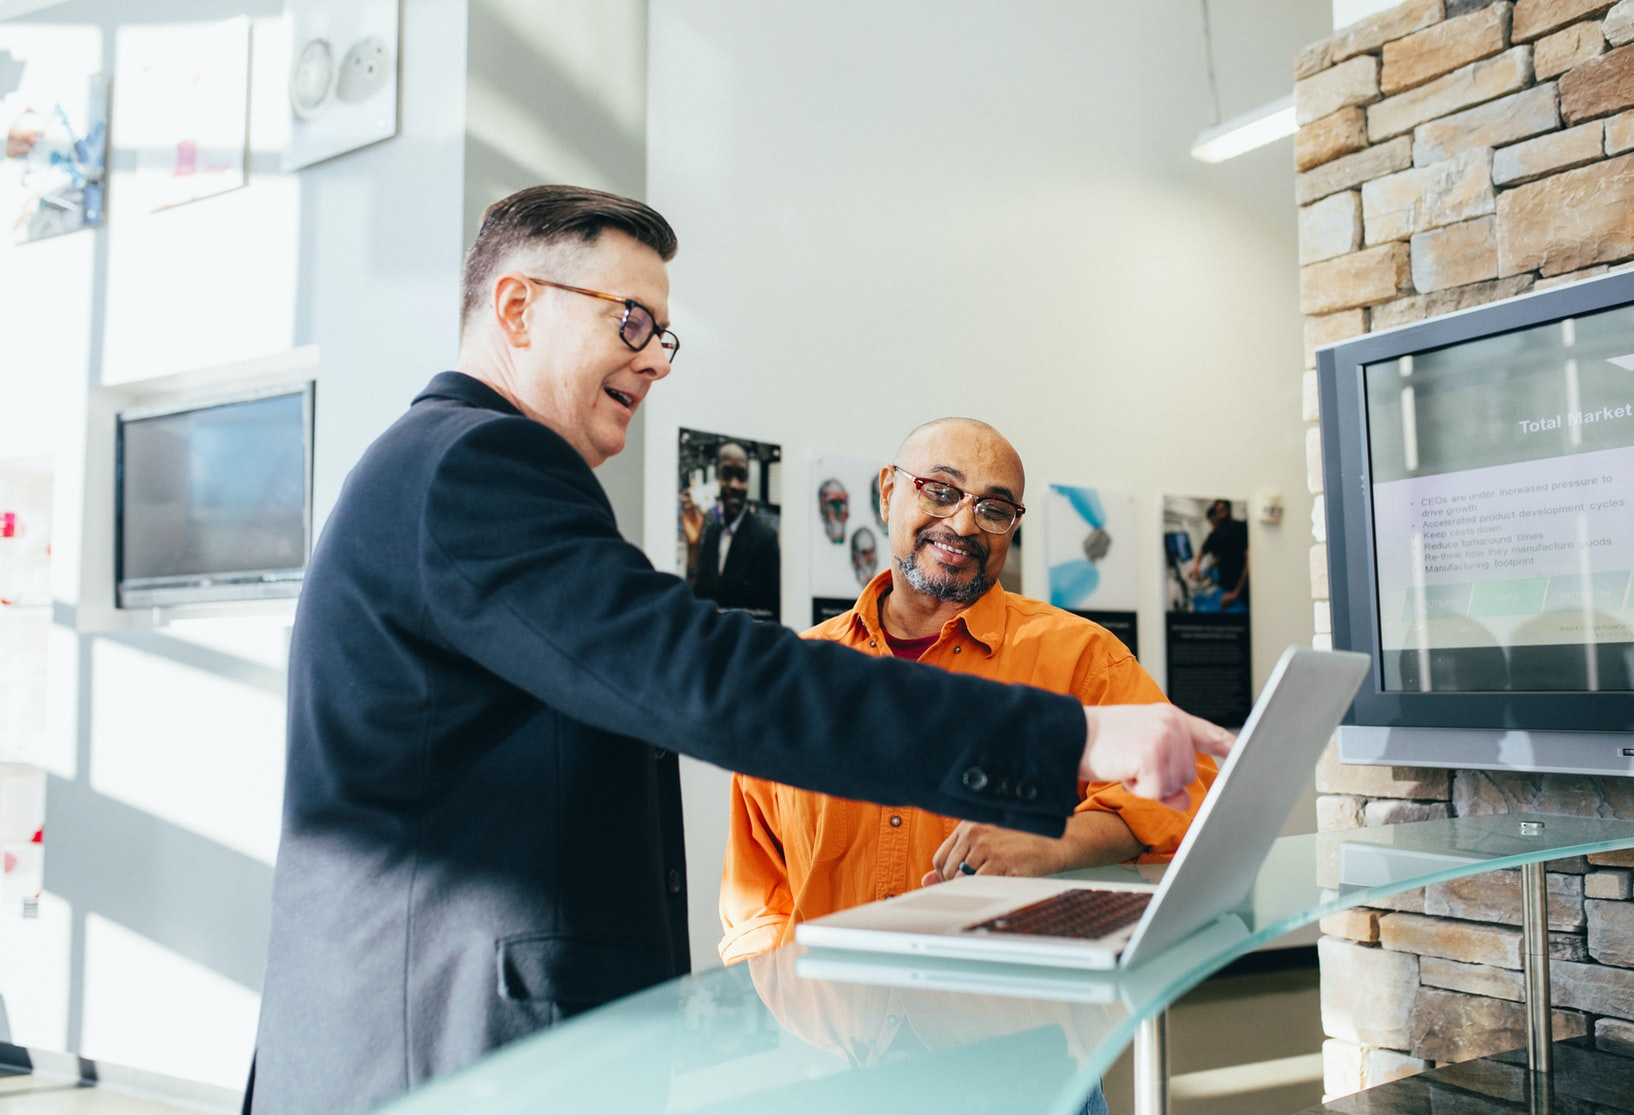 Male advisor with glasses showing another employee how something works on computer